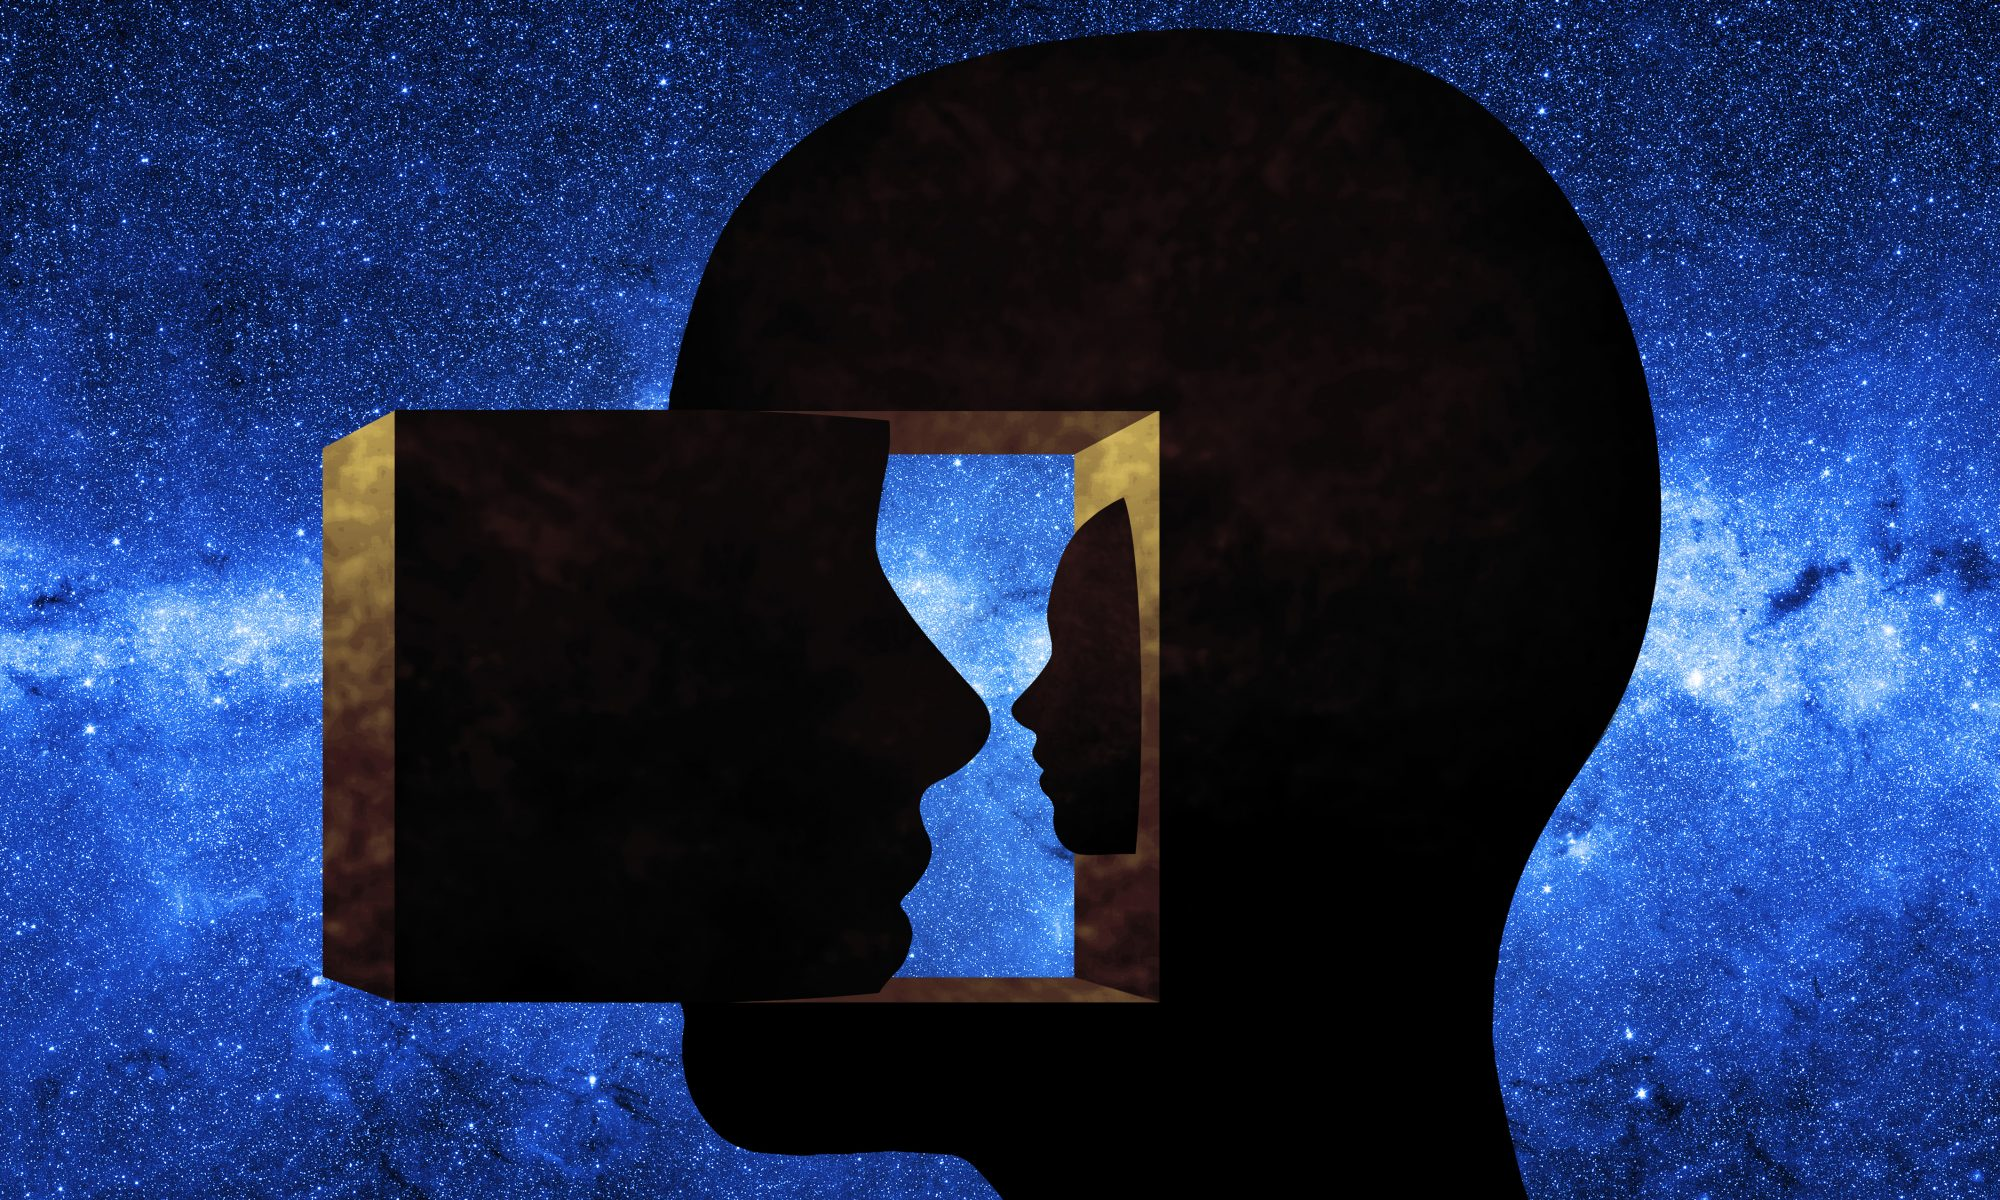 illustration of a Human head looking inward with a starry sky in the background to represent dissociation and dissociative drugs like ketamine